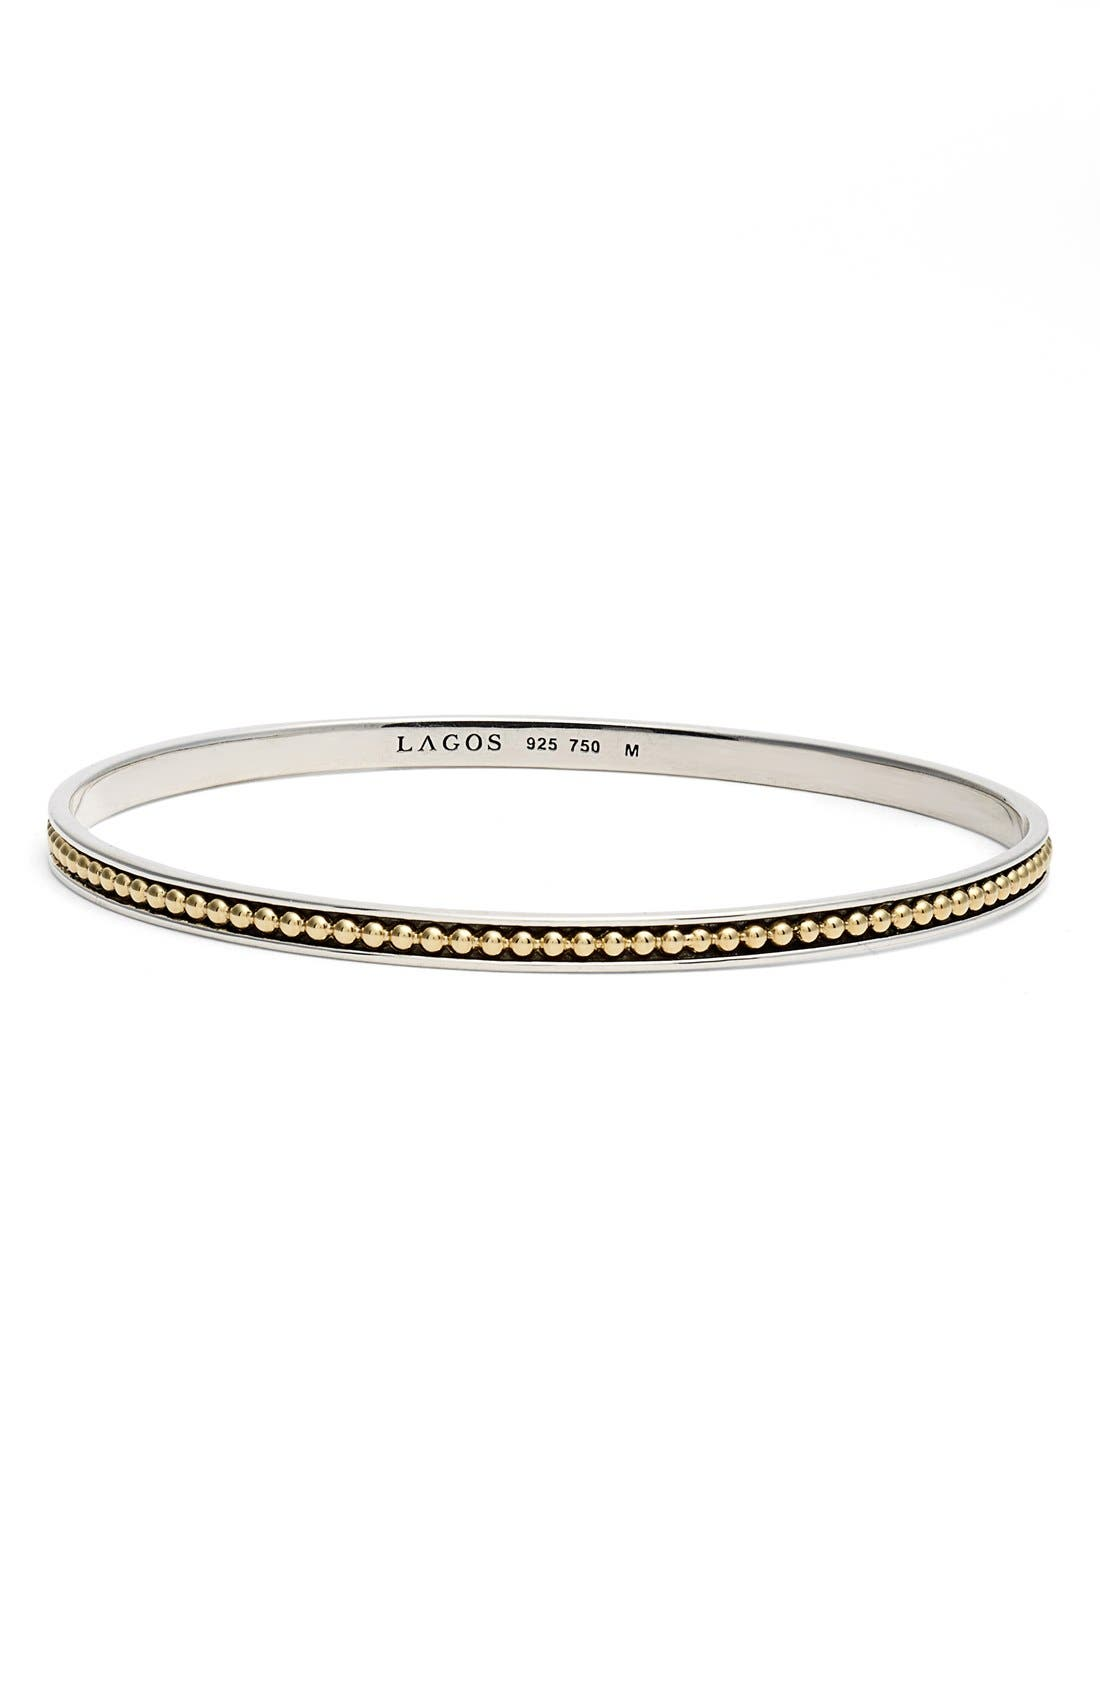 Alternate Image 1 Selected - LAGOS 'Enso' Caviar Bangle